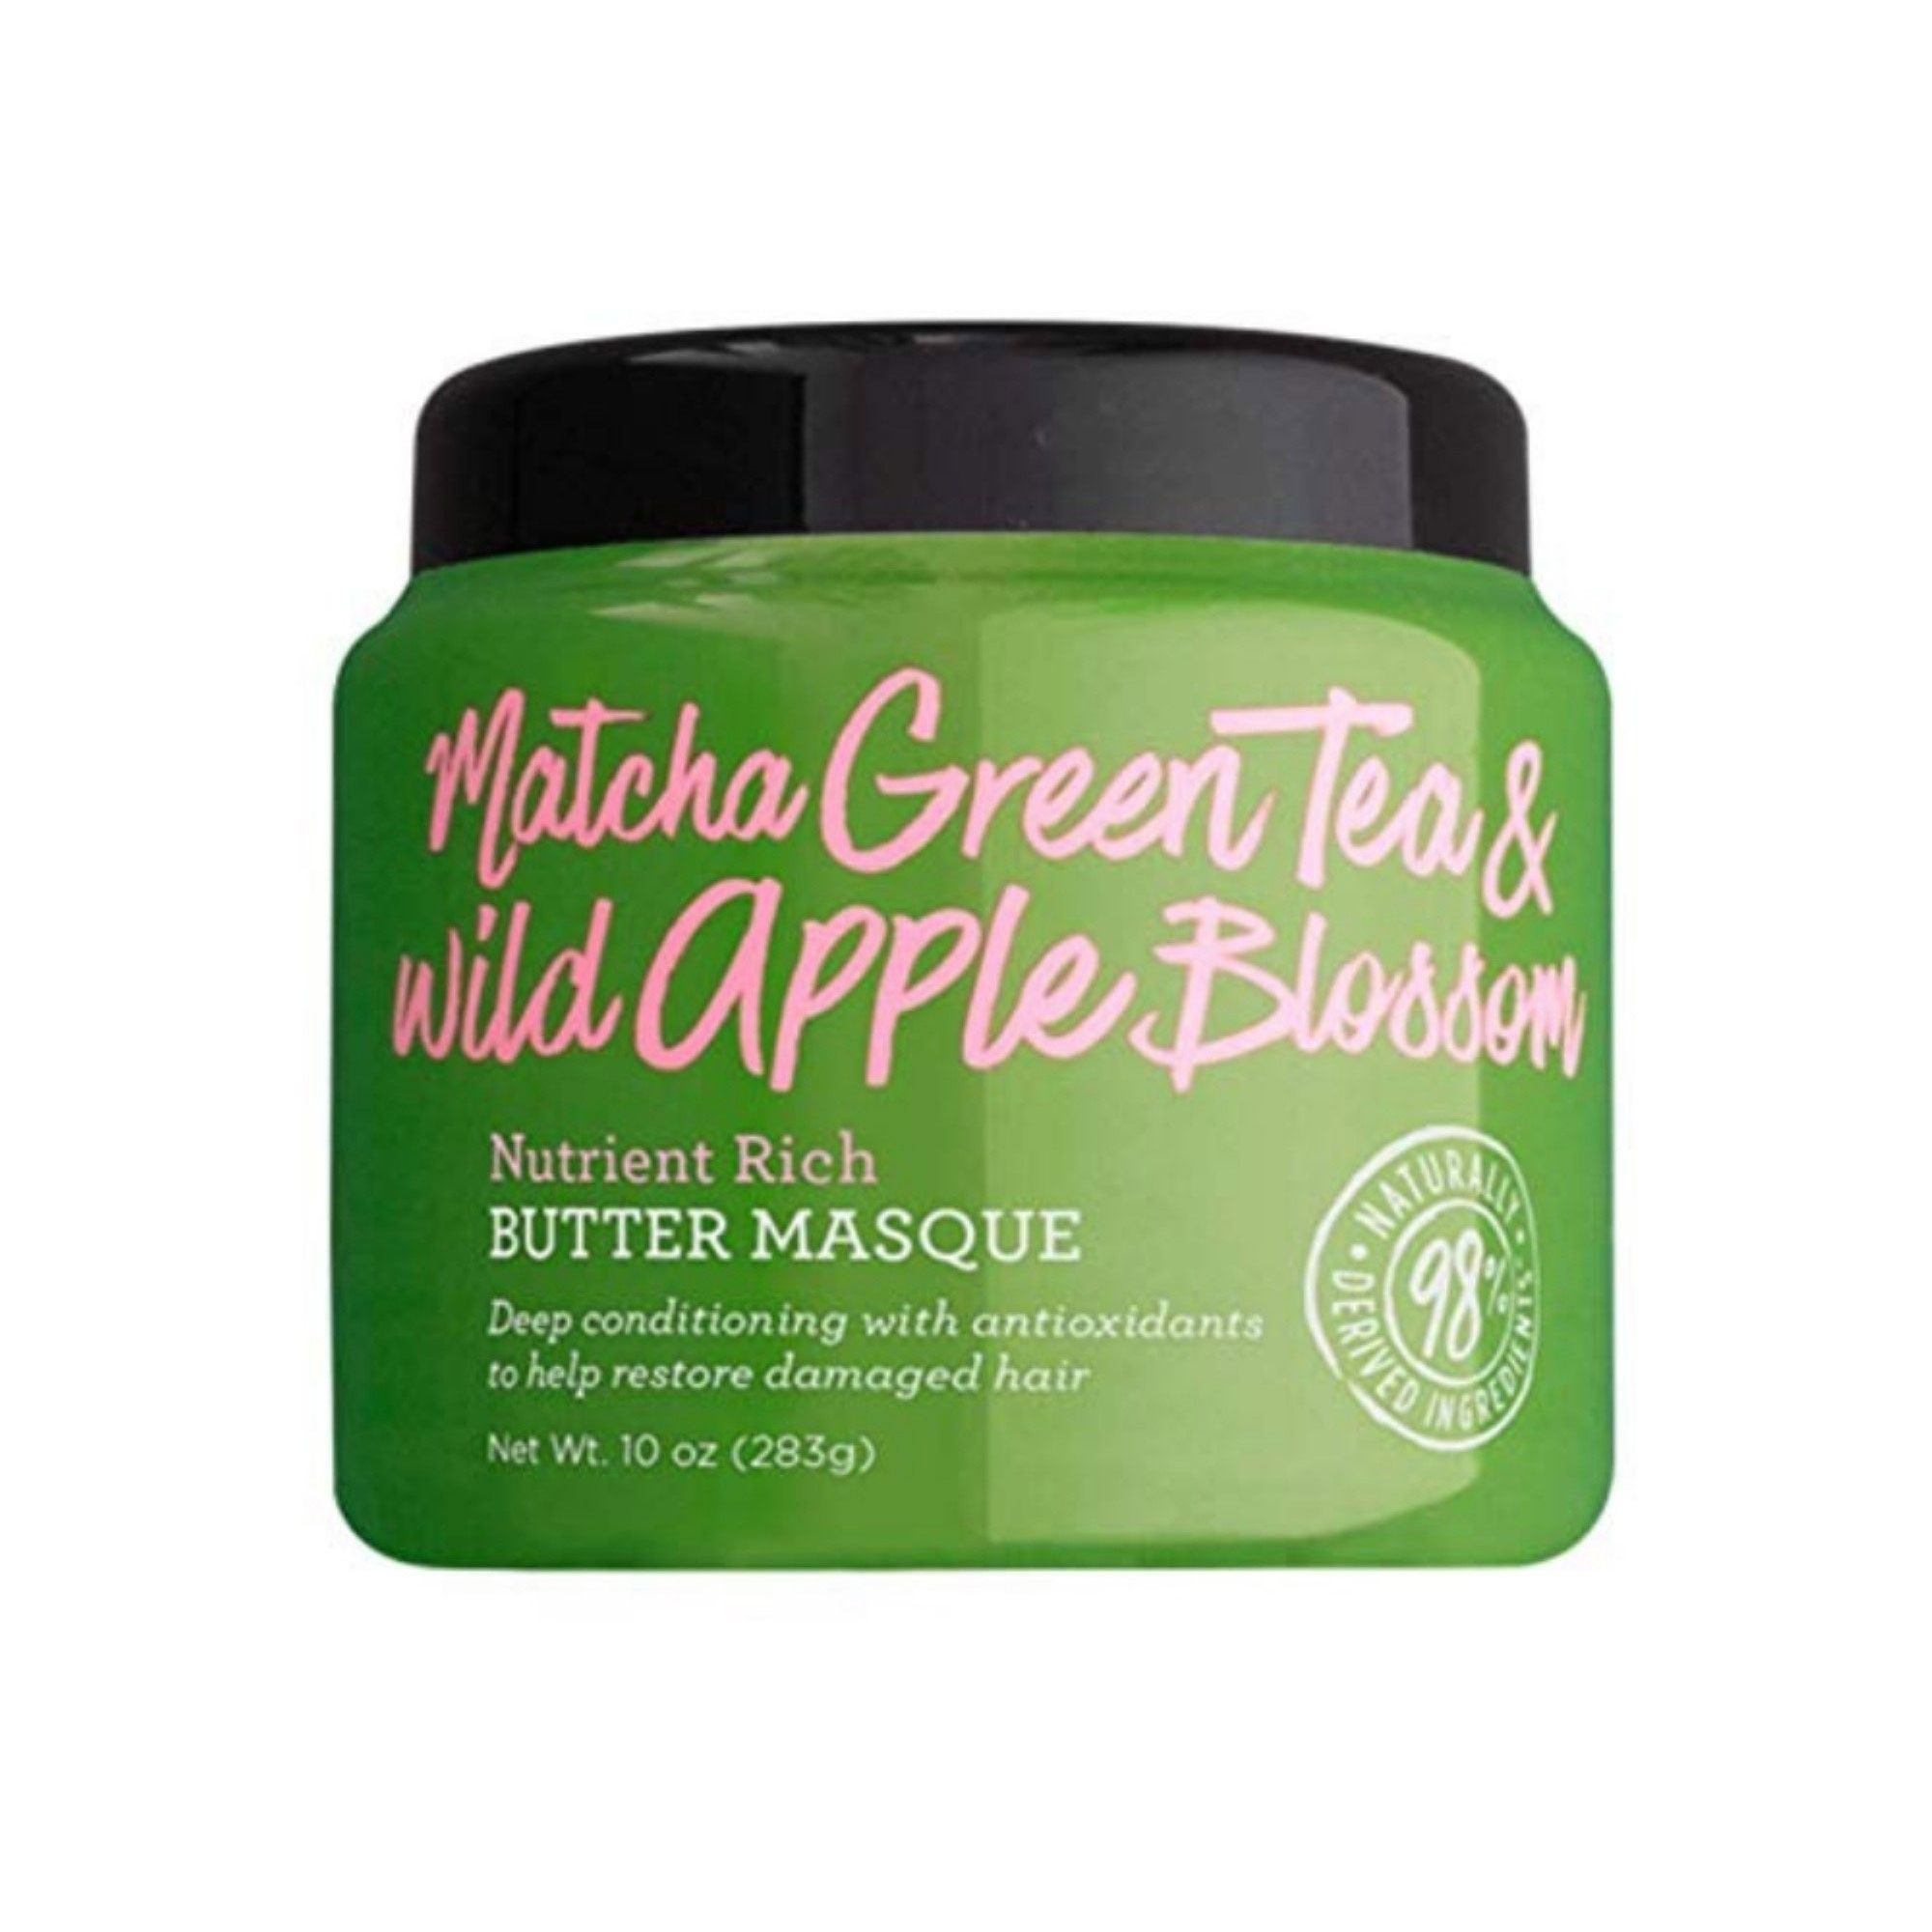 Not Your Mother's Matcha Green Tea & Wild Apple Blossom Masque